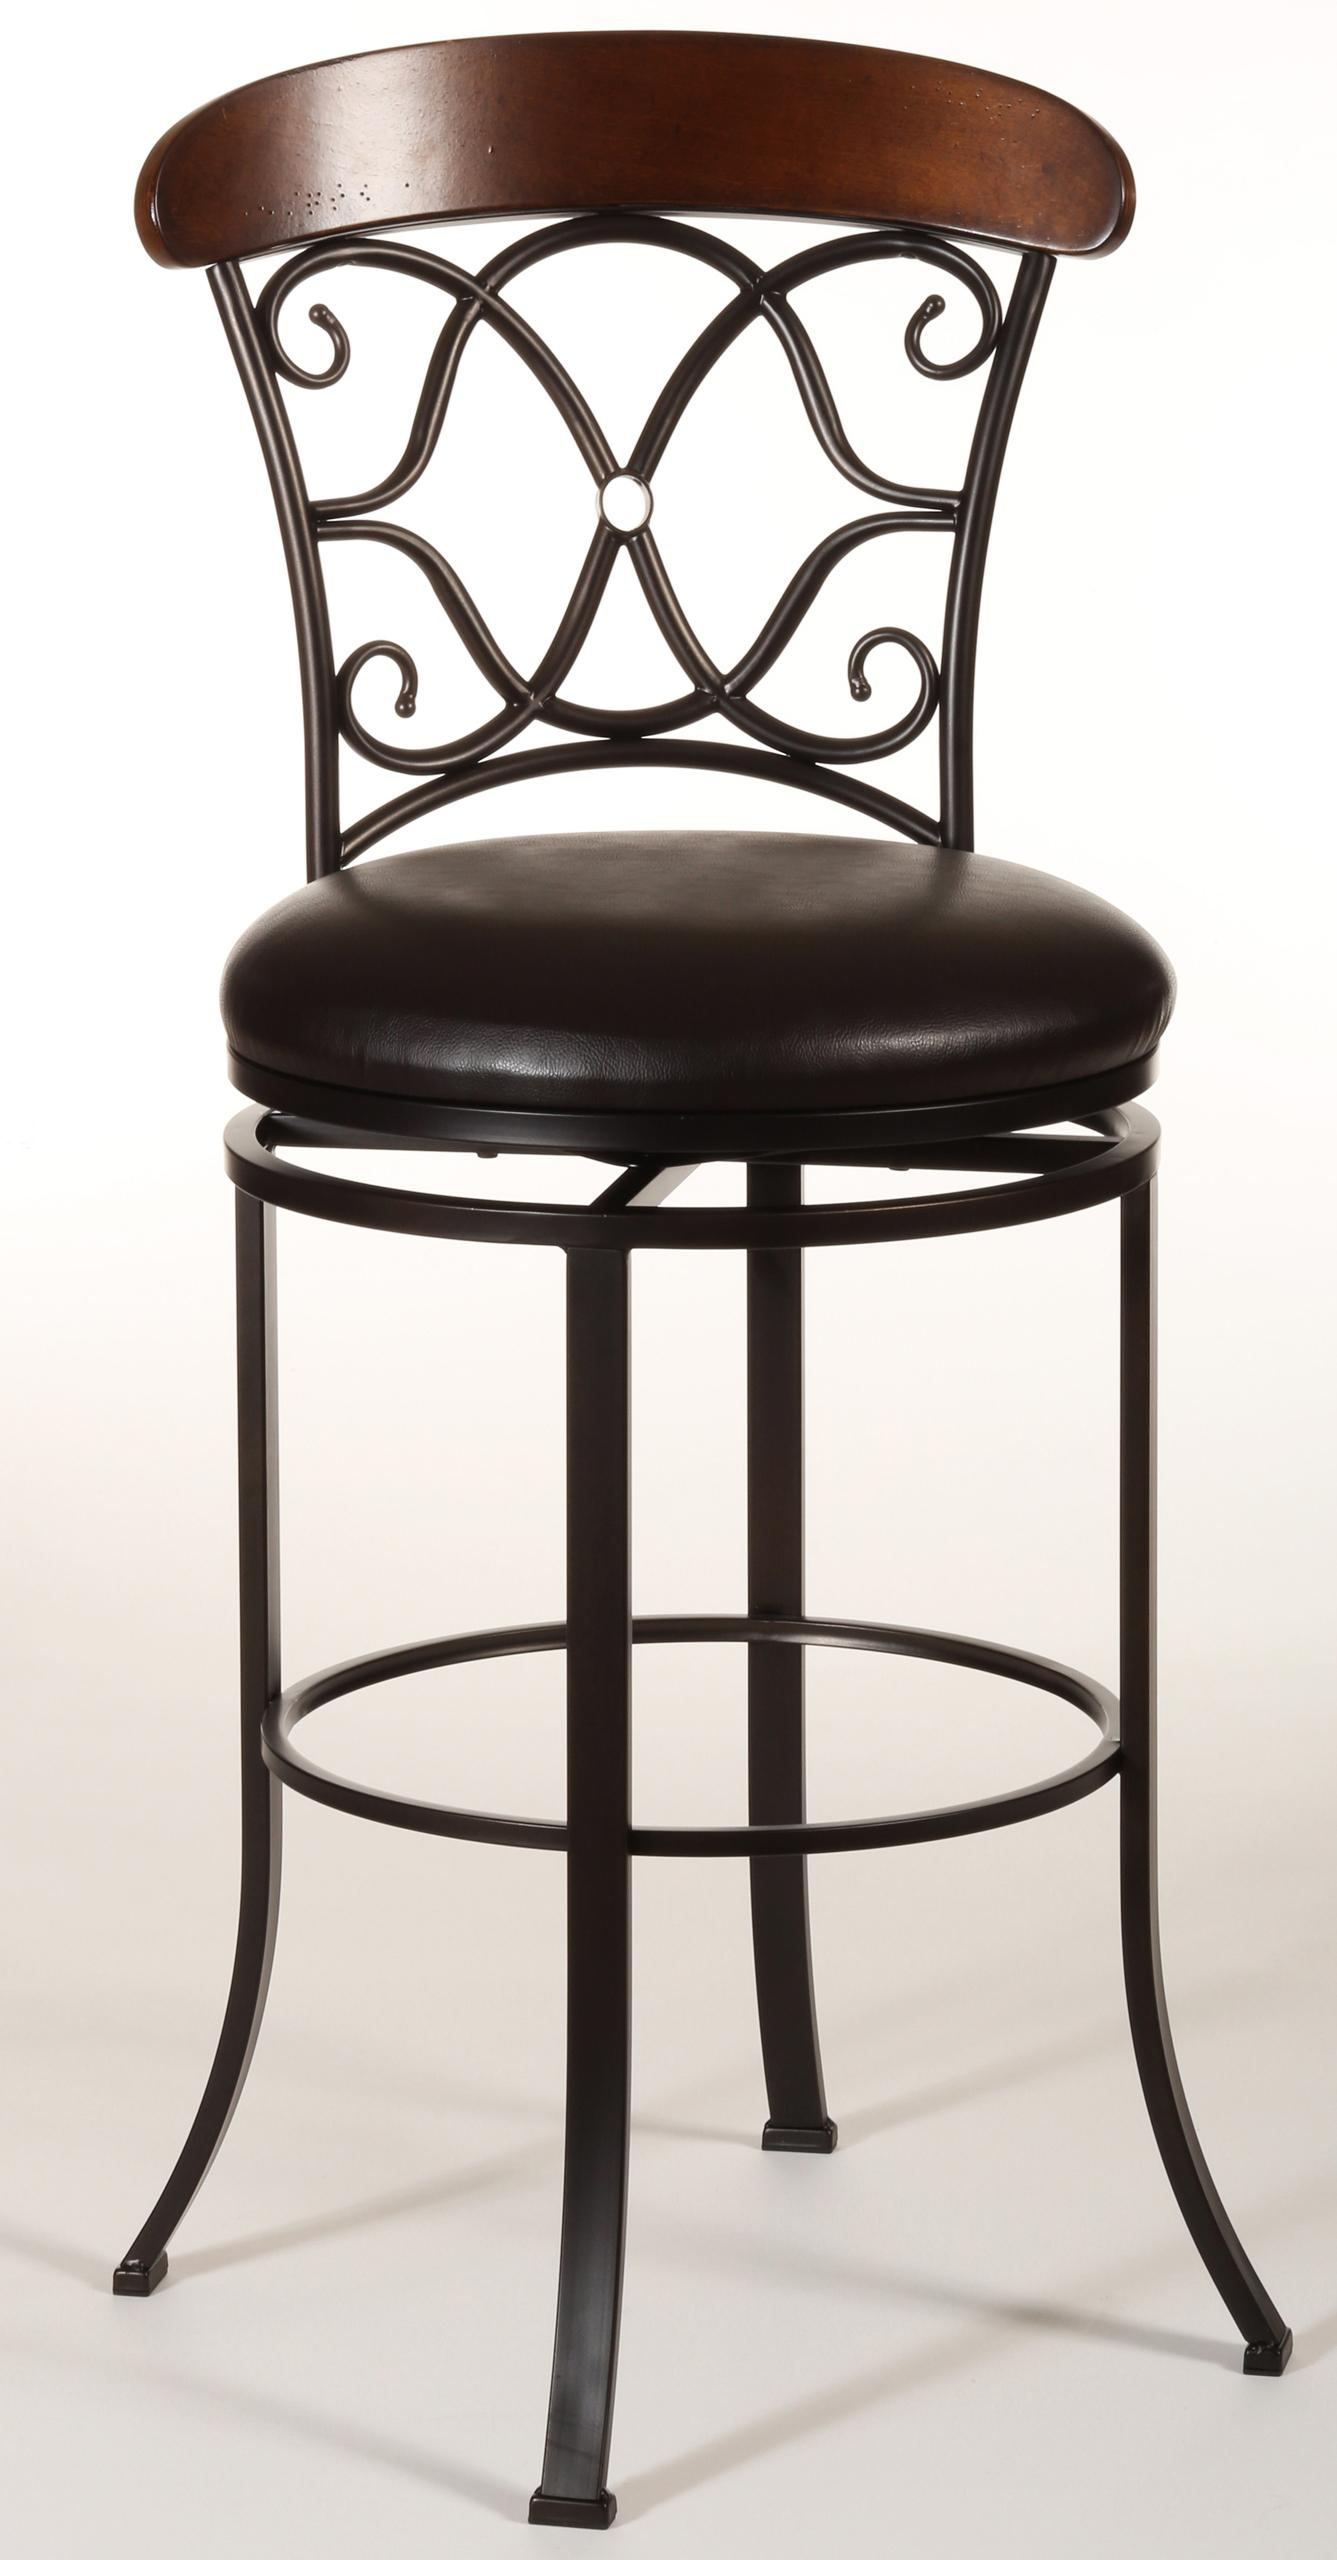 Hillsdale Metal Stools Dundee Swivel Counter Stool